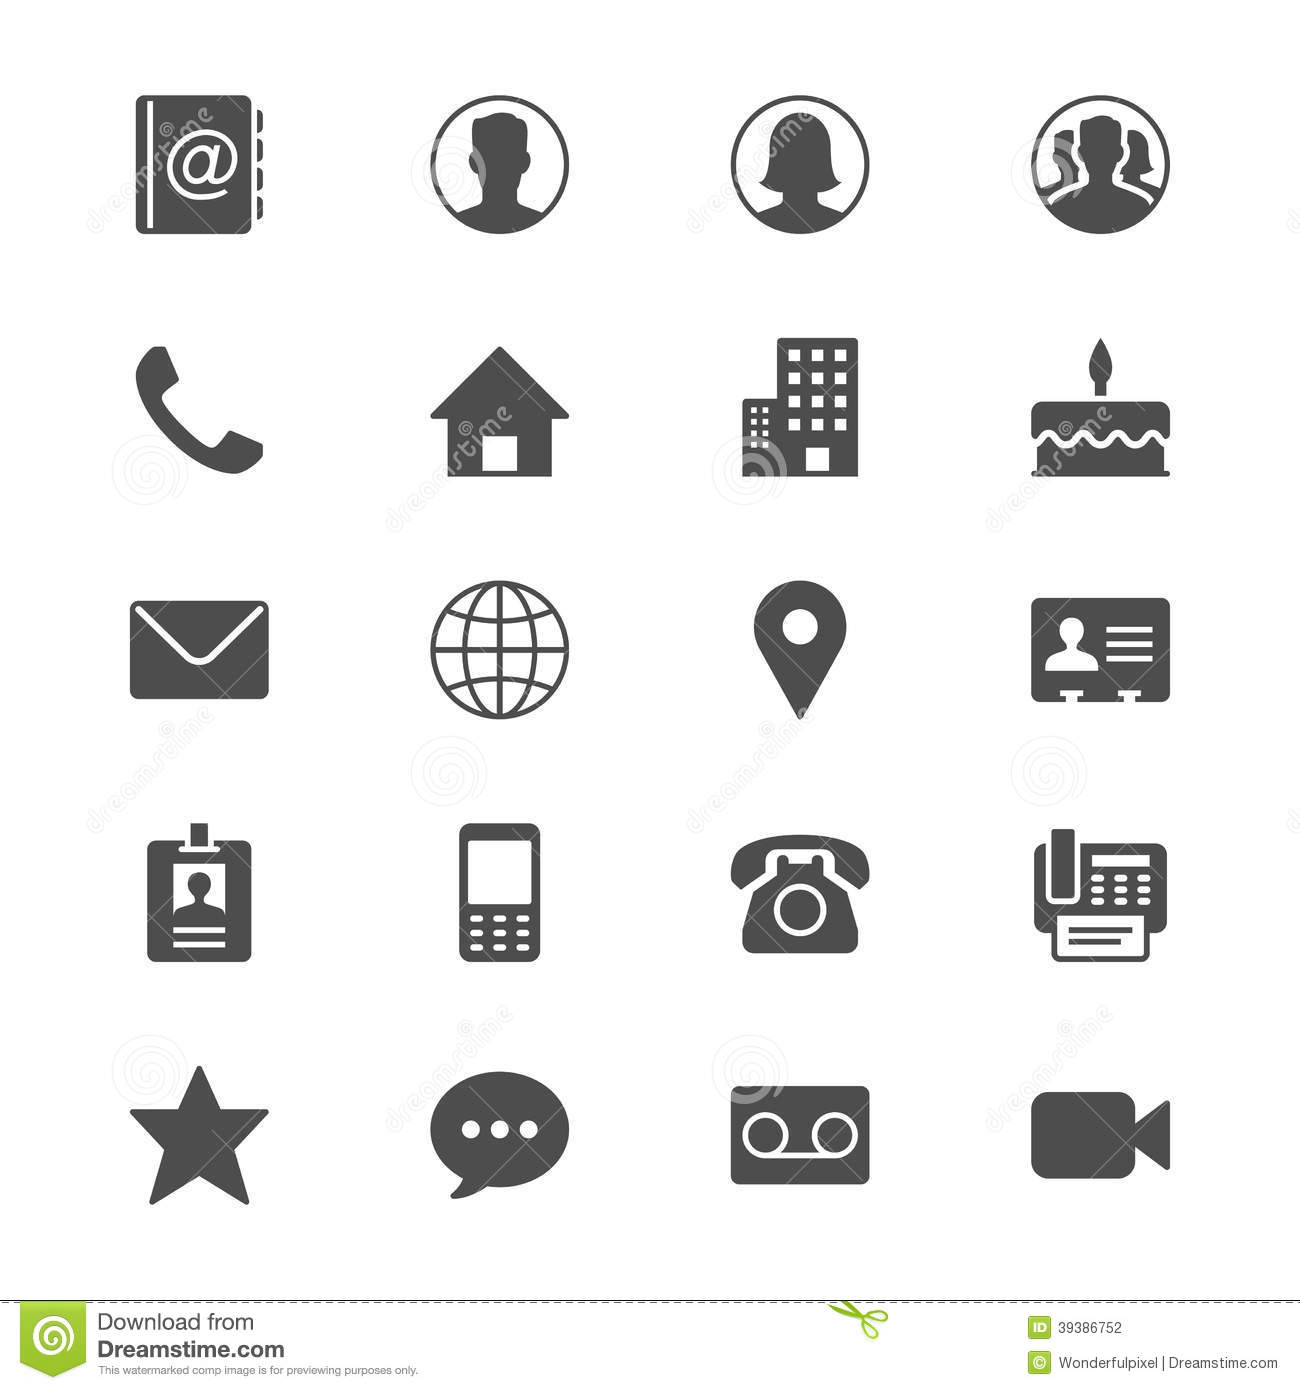 15 Contact Icon Flat Images - Flat Email Icon, Contact ...